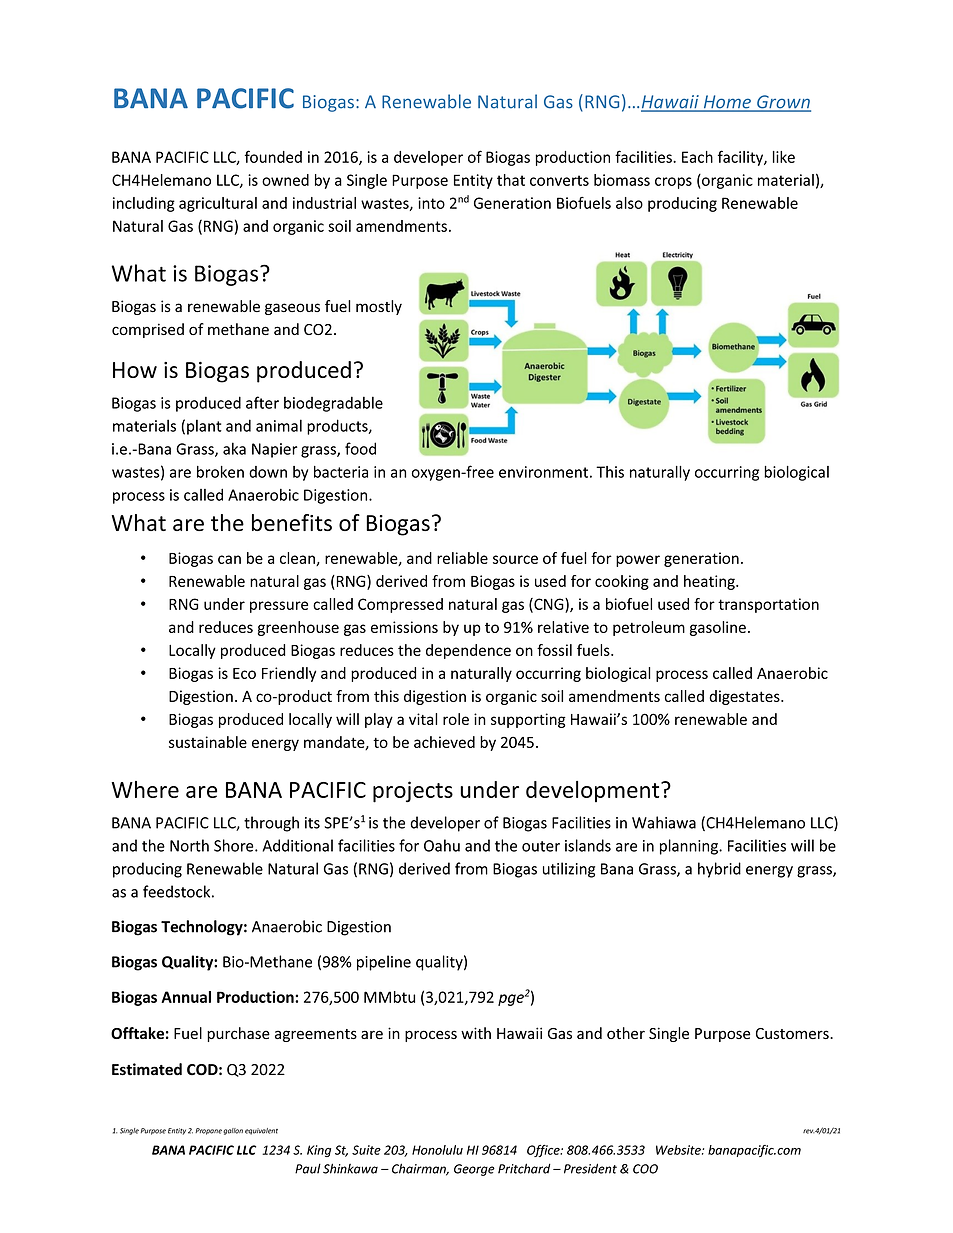 BANA PACIFIC Overview - 040121.png